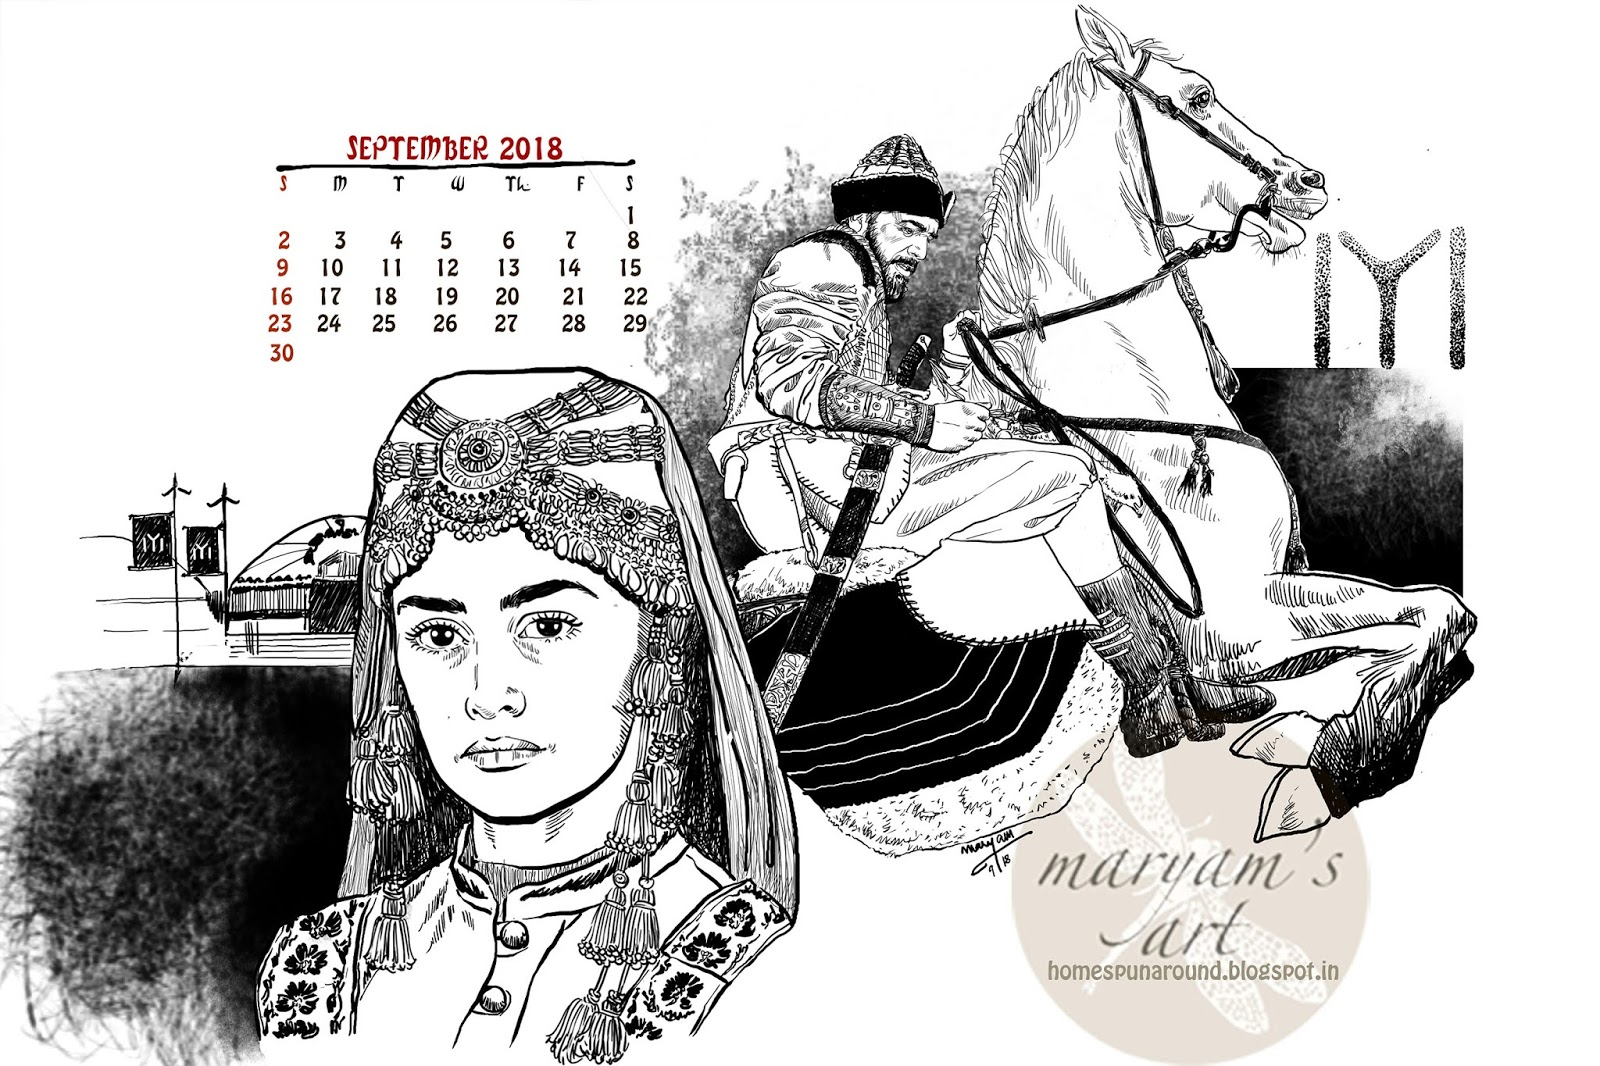 Piqued Case For Curiosity >> September 2018 Calendar Graphic Ertugrul Home Spun Around